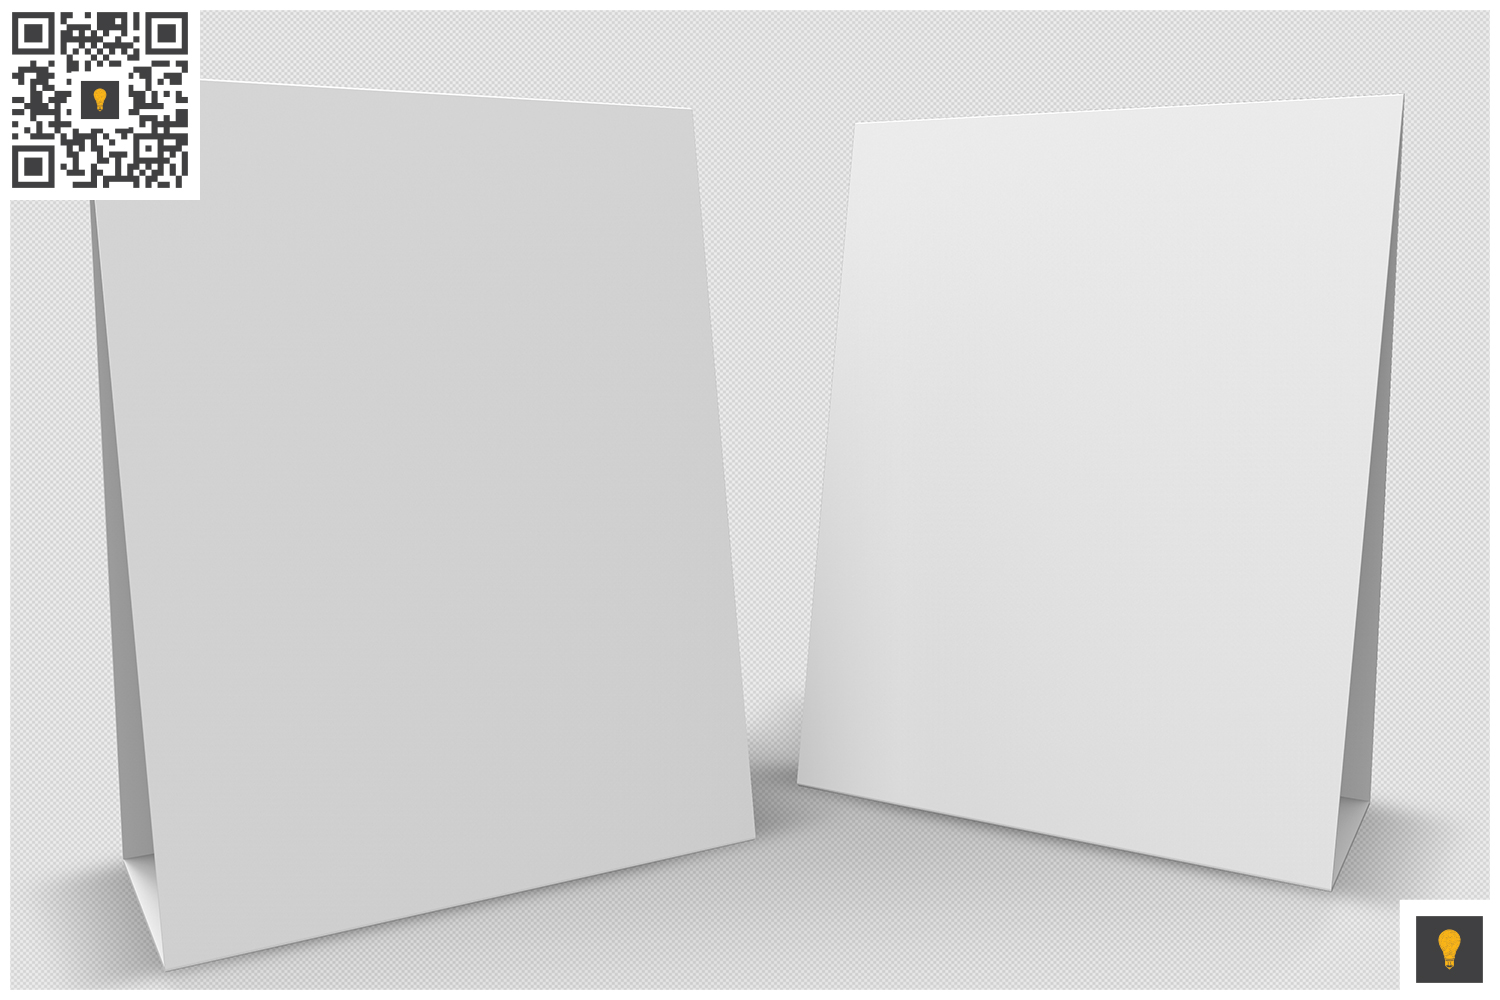 Table Tent 3D Render example image 5